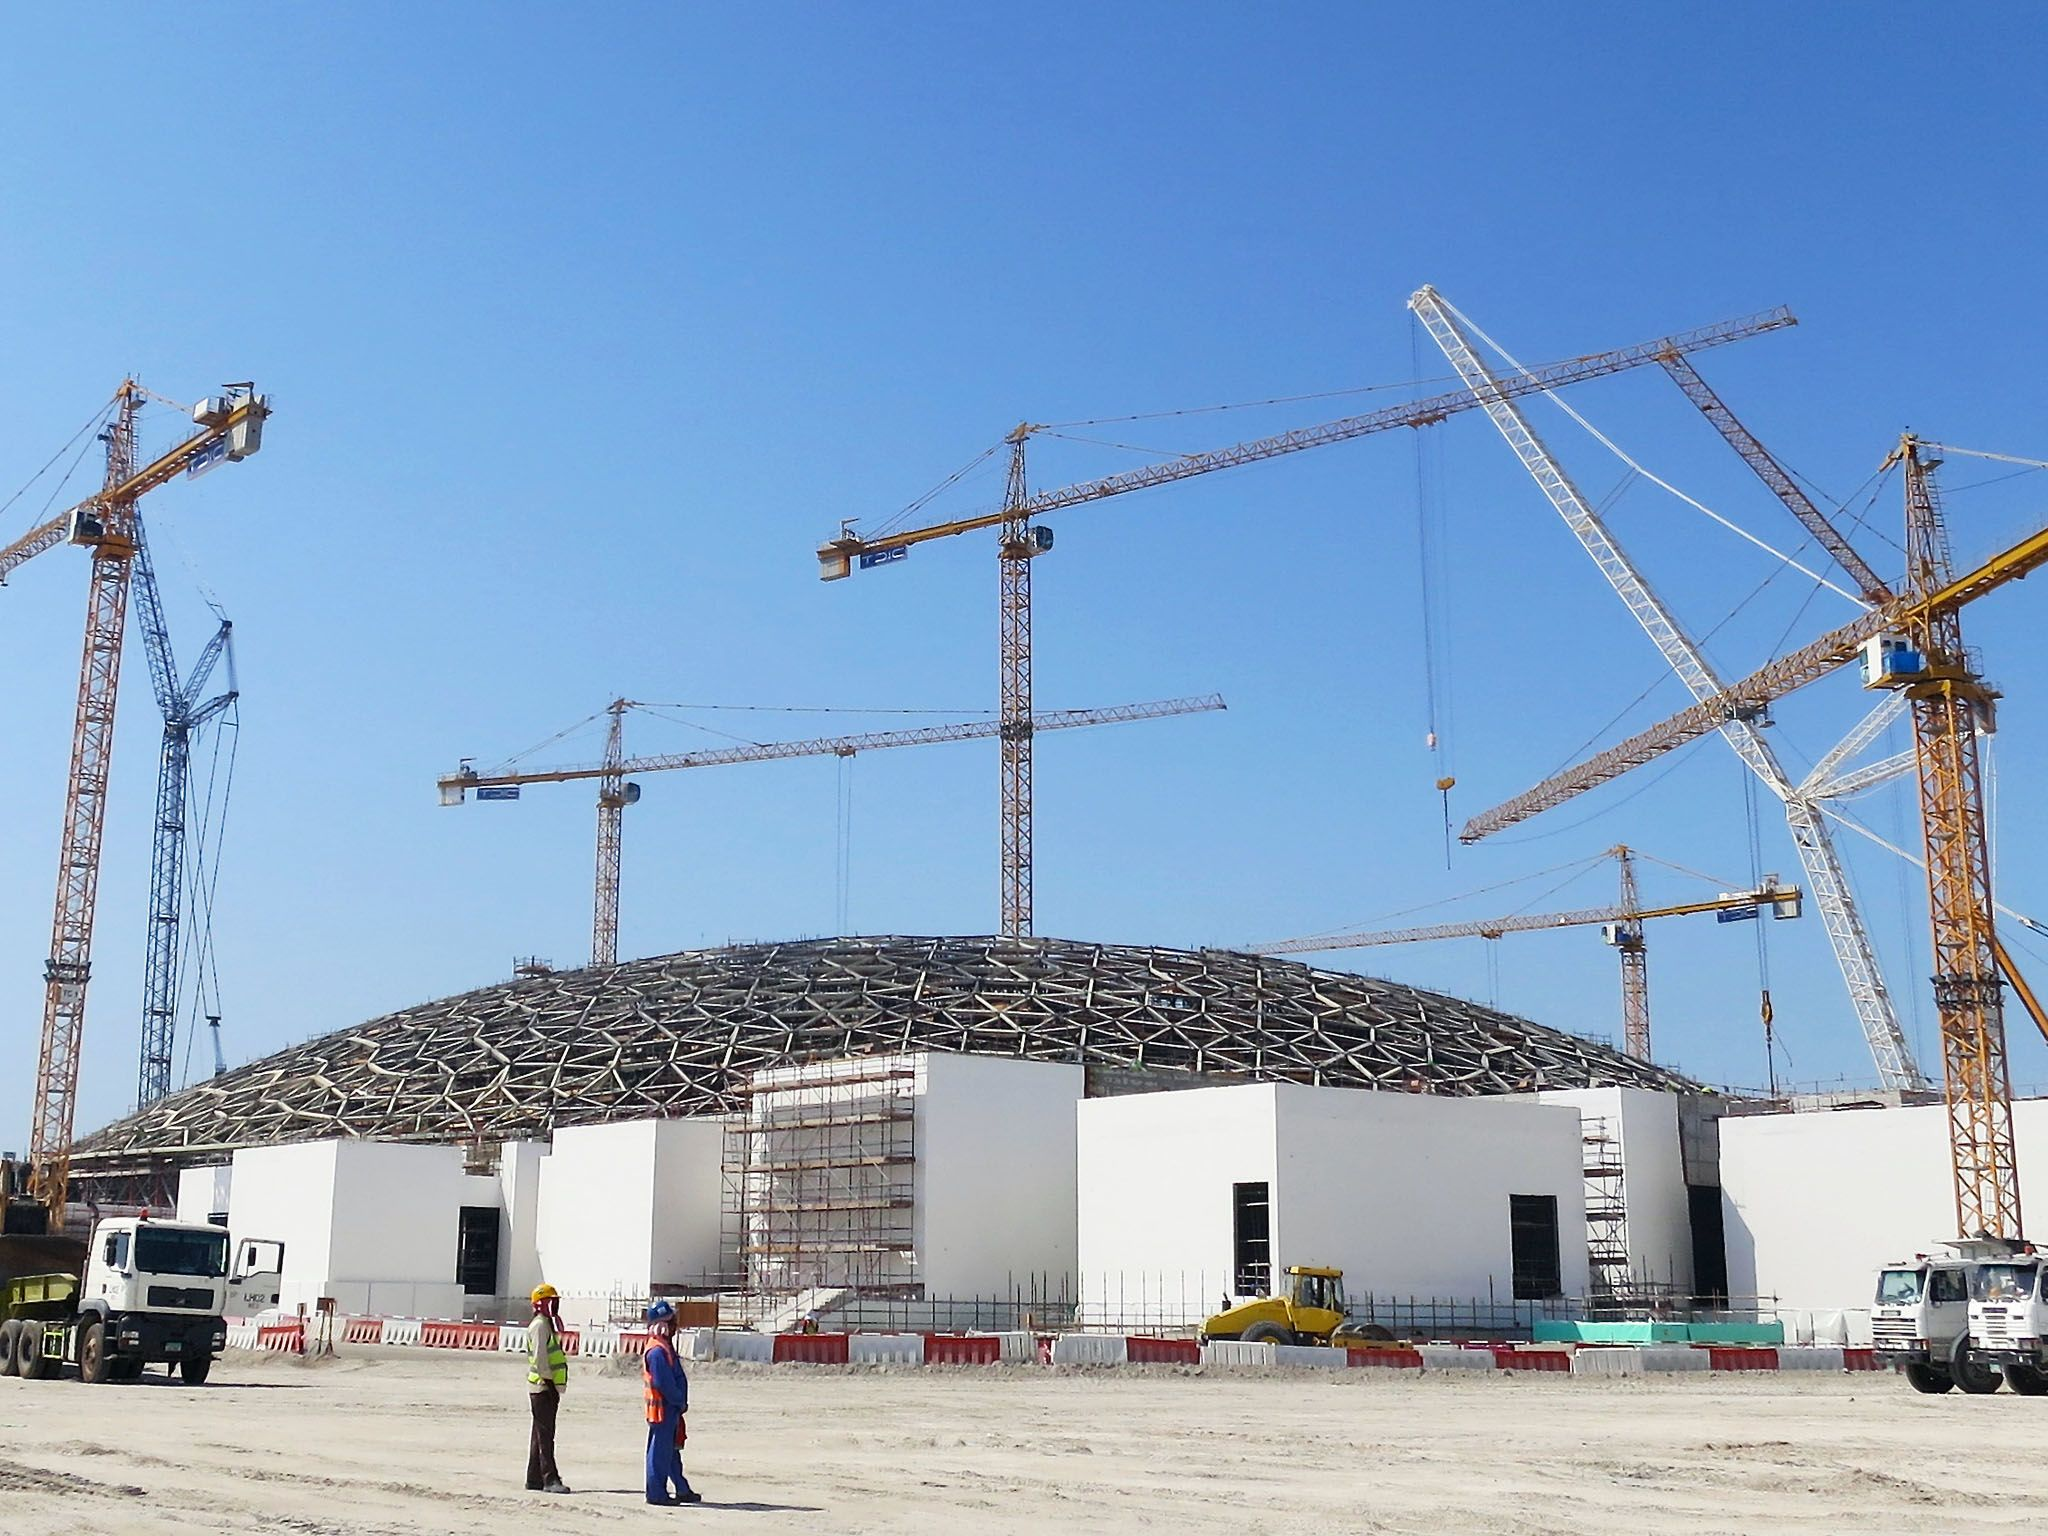 Abu Dhabi: The exterior of the Louvre Ahu Dhabi. This image is from Megastructures: Louvre Abu... [Photo of the day - May 2016]